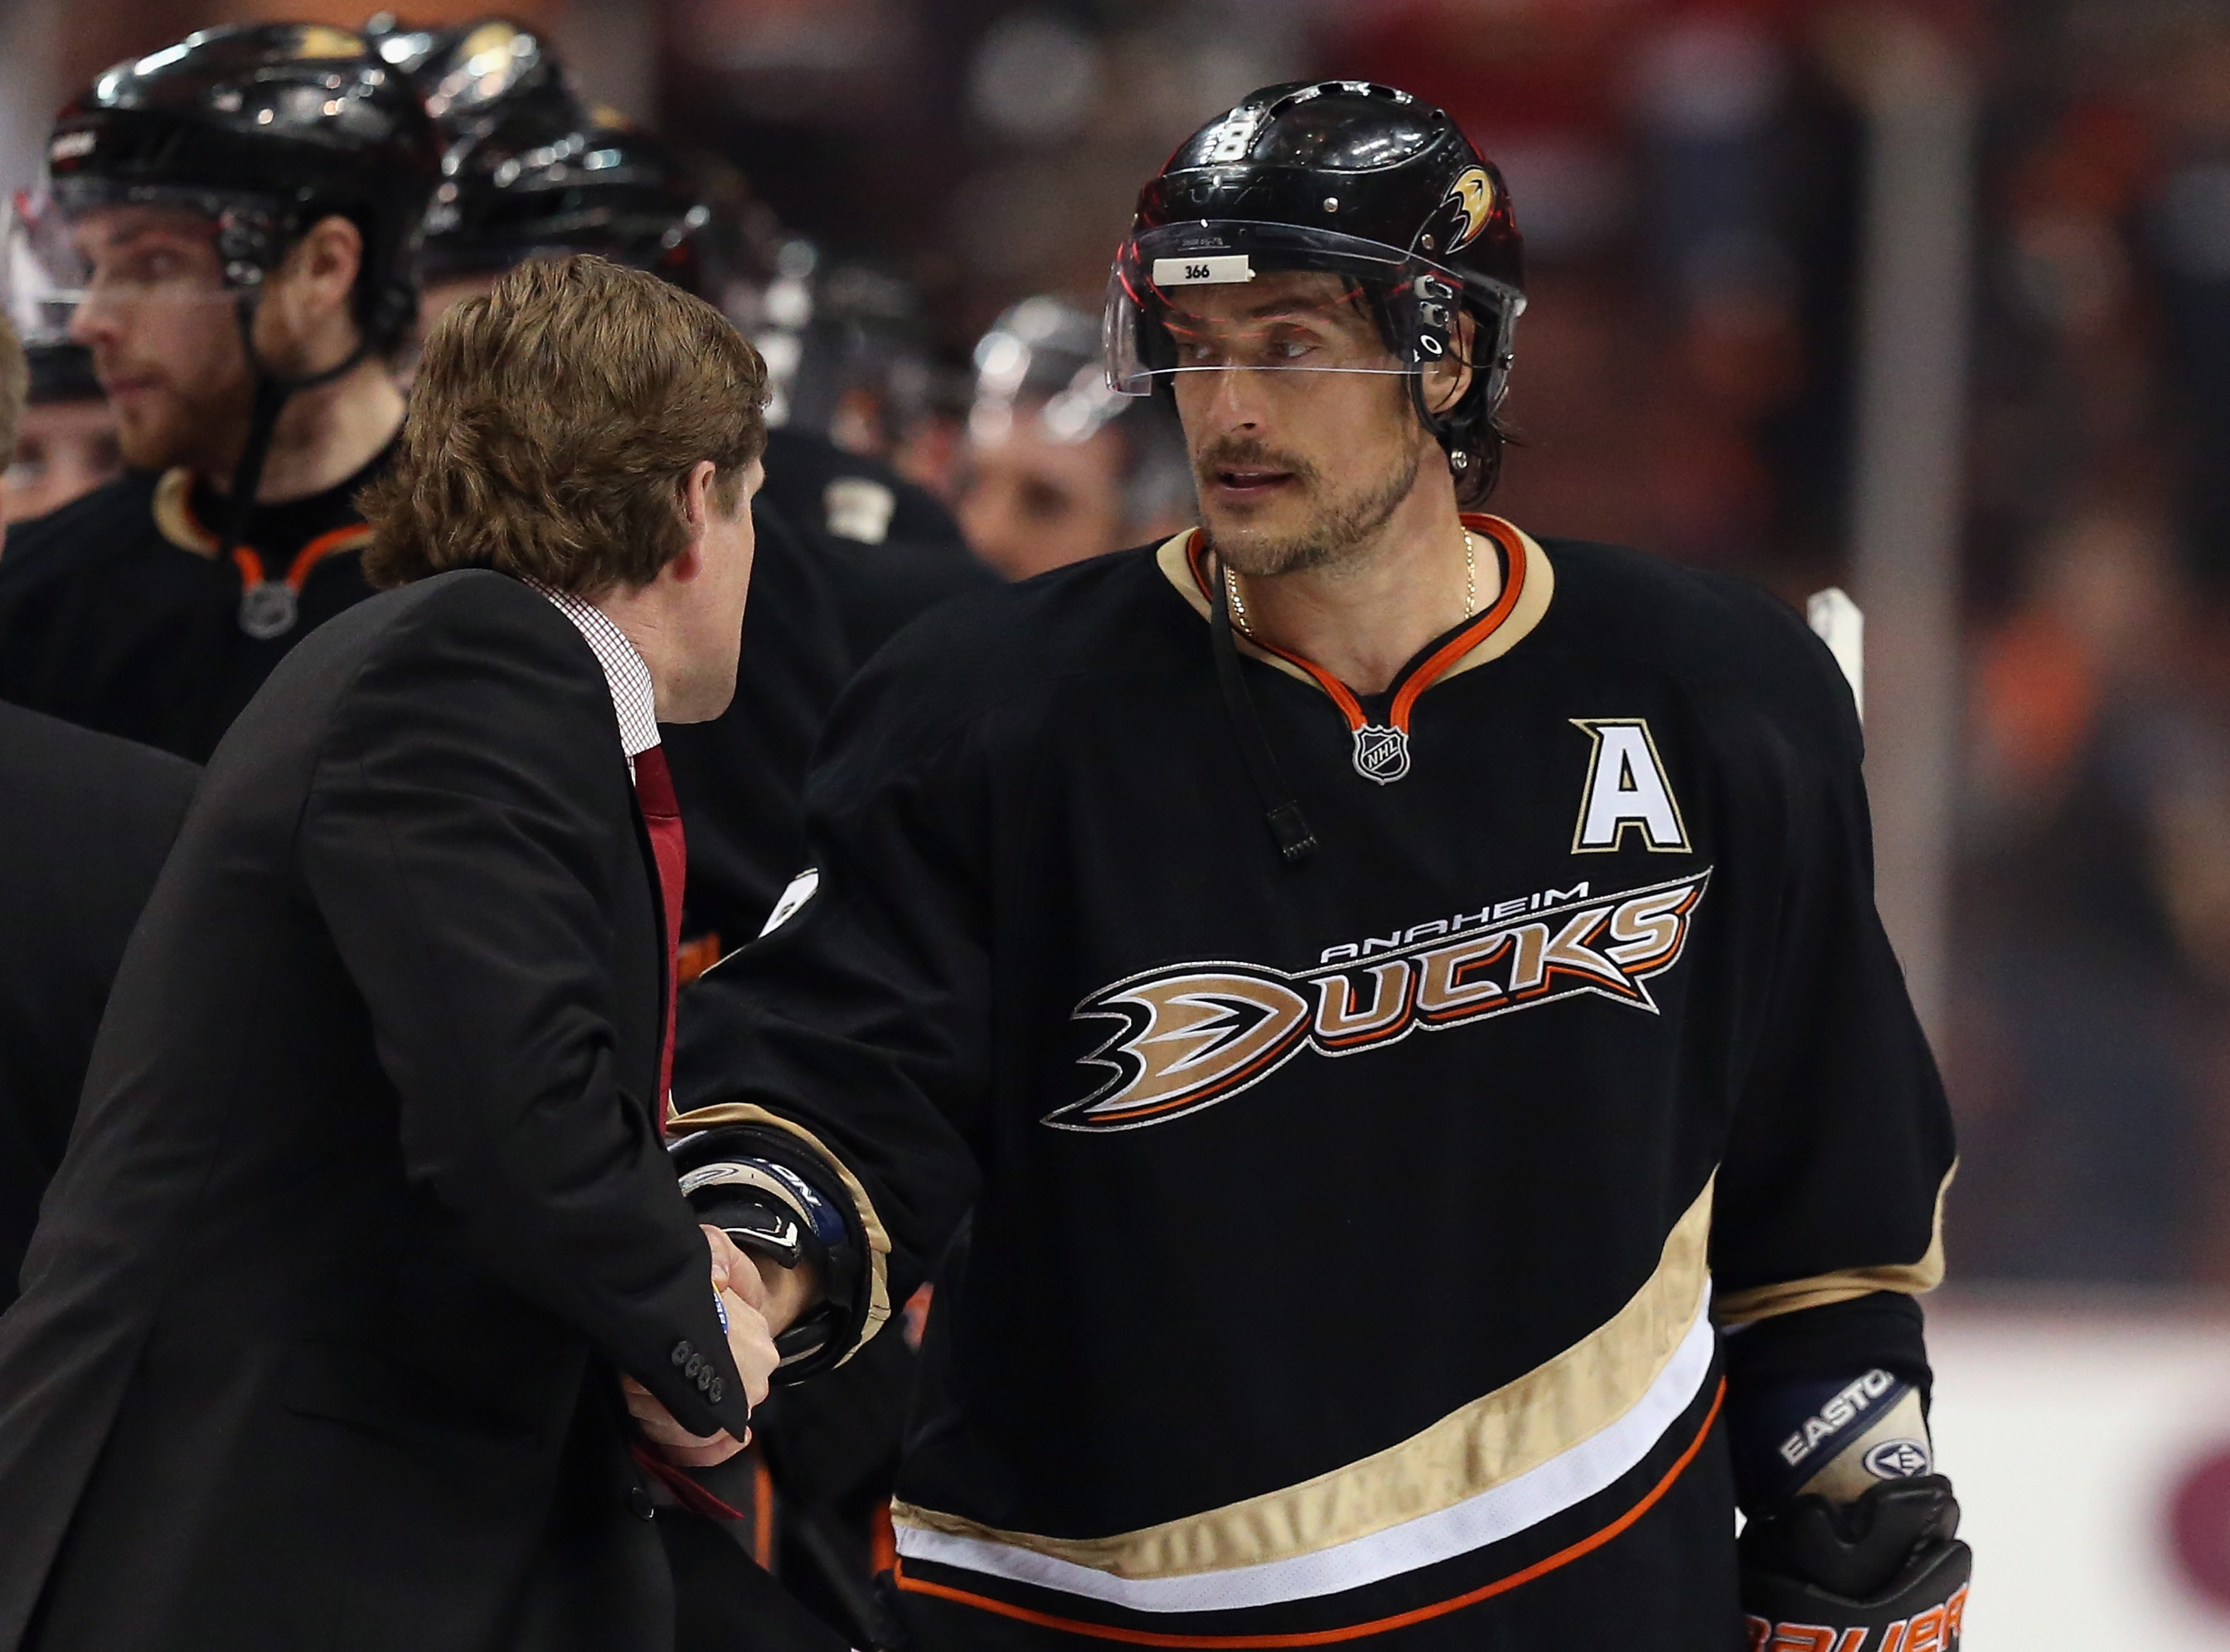 """""""So... see you at my restraunt in July?"""" - Teemu Selanne, shamelessly self-promoting in the handshake line."""